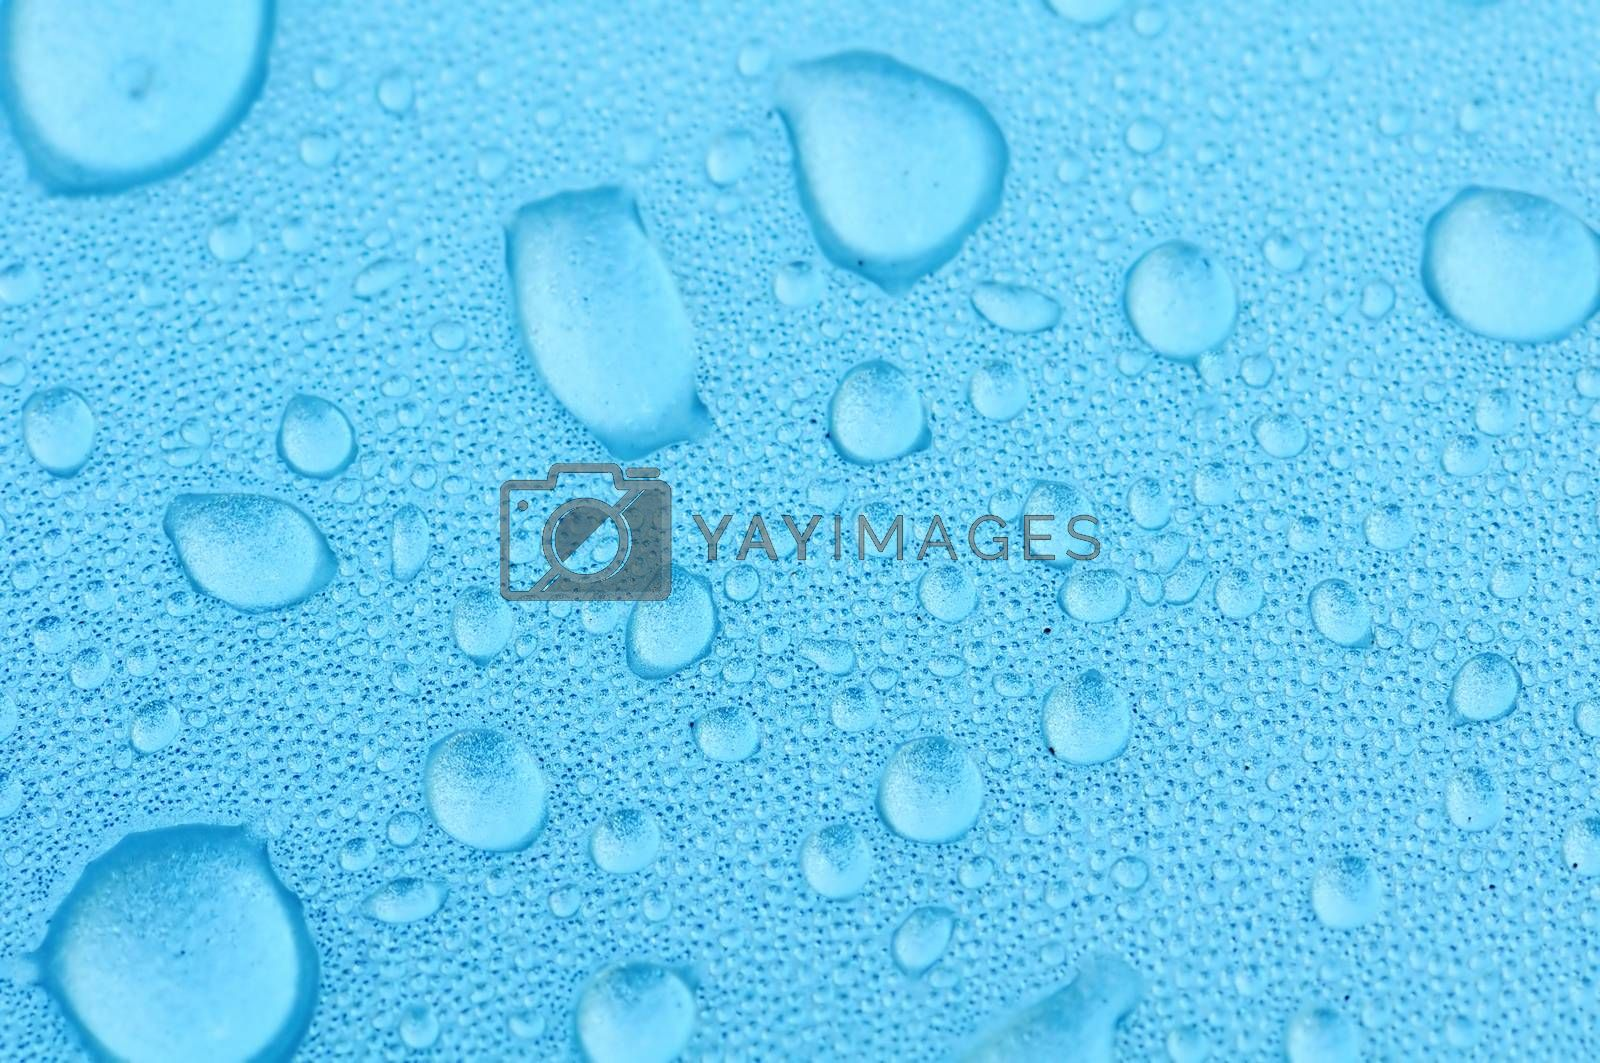 A blue water drops texture or background